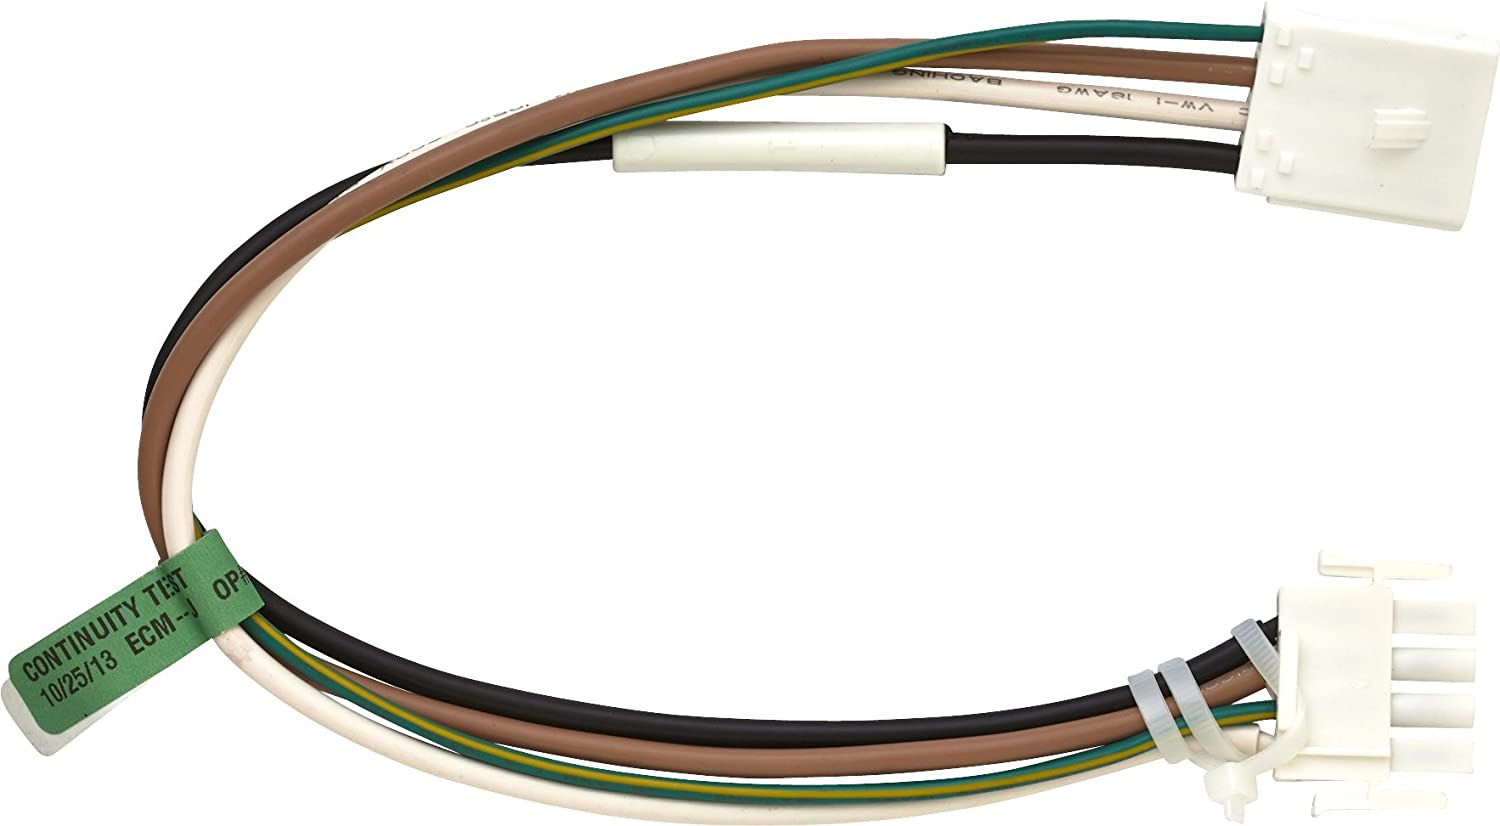 6113euQ4aCL._SL1500_ amazon com whirlpool d7813010 harness icemaker home improvement ice maker wiring harness maytag at readyjetset.co